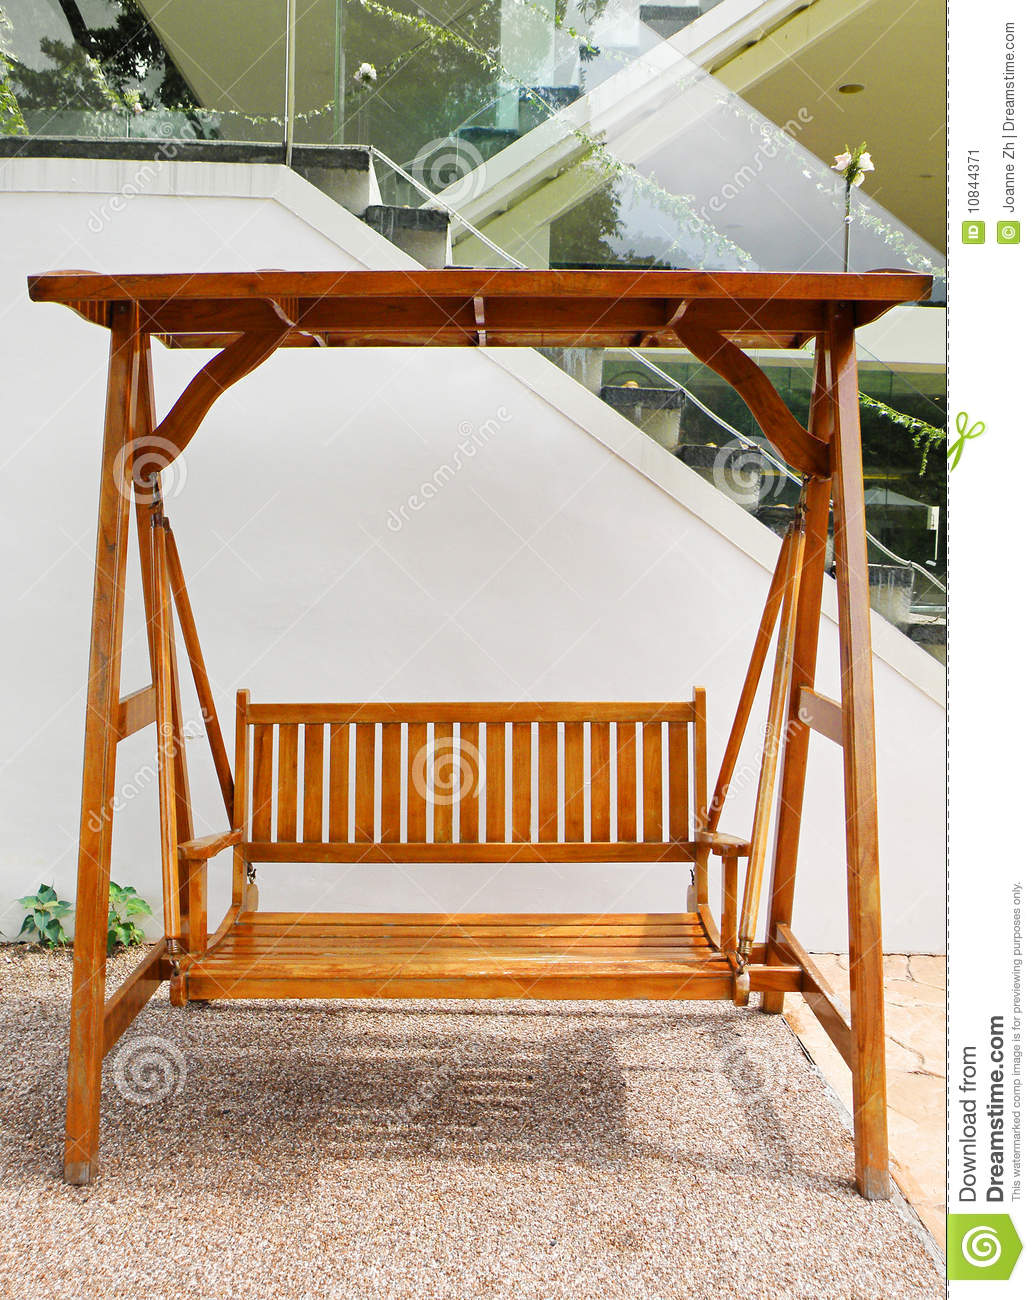 wood swing with double seating, placed outdoors on the patio. Garden ...